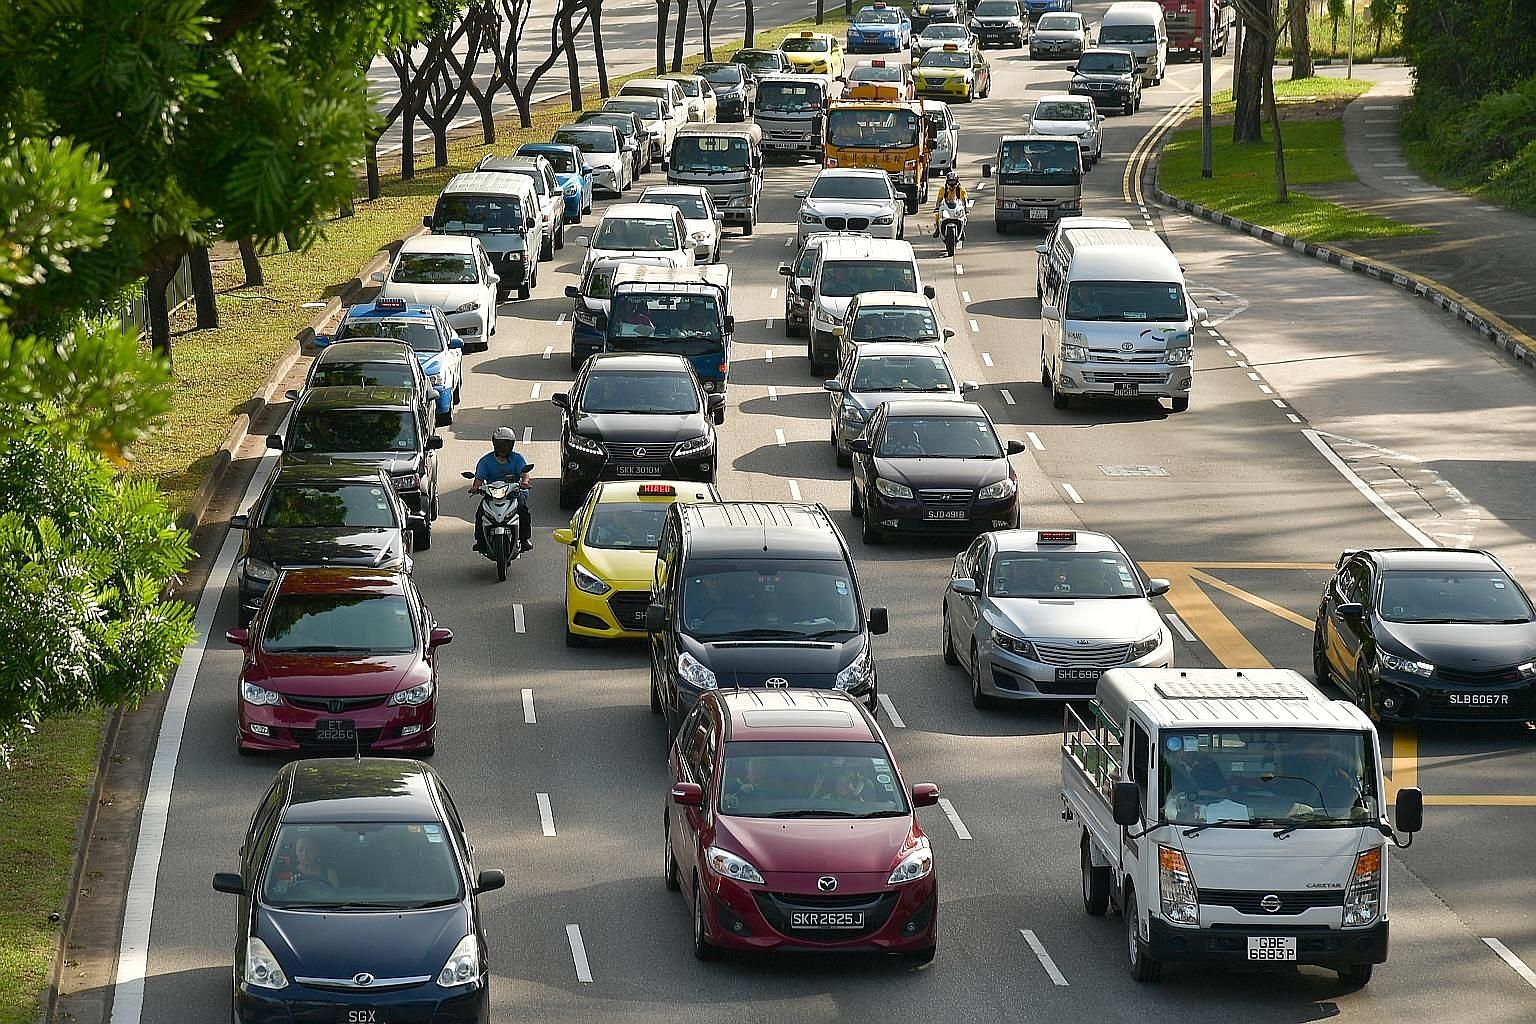 Car COE revalidations - which allow motorists to keep their wheels beyond 10 years by paying a prevailing quota premium - were more than halved in May to 3,282. In June, the number again contracted by more than half to 1,141. This is the first signif